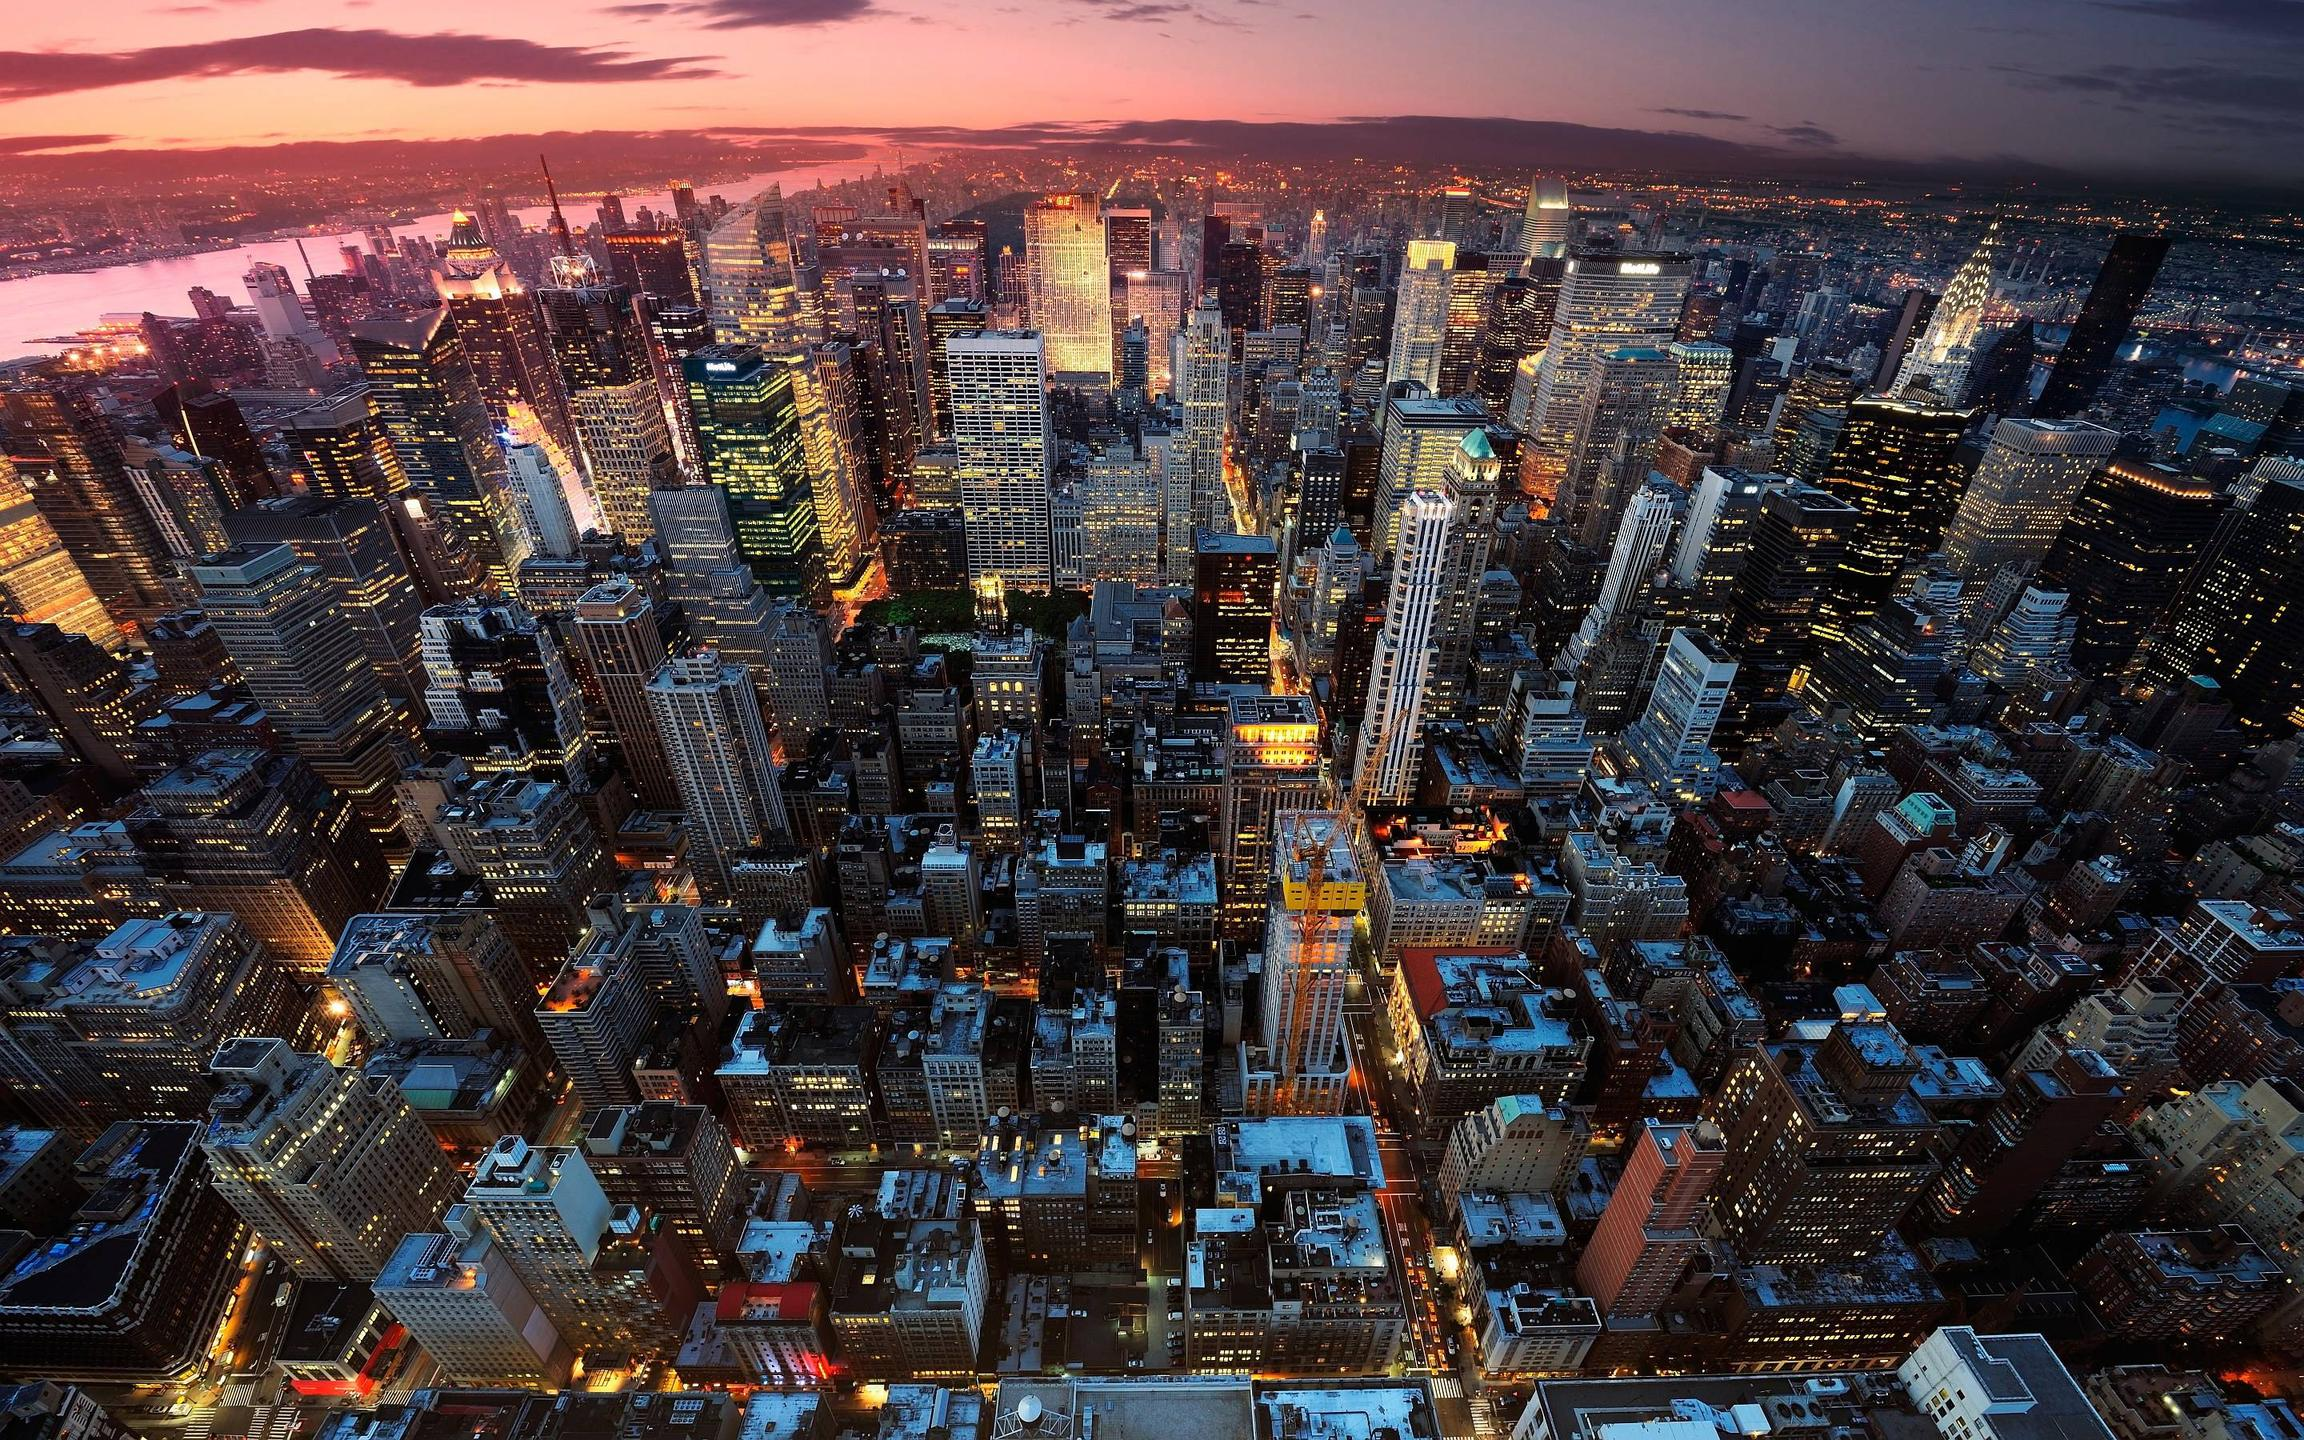 Hd New York City Wallpapers Backgrounds For Free Download 2304x1440